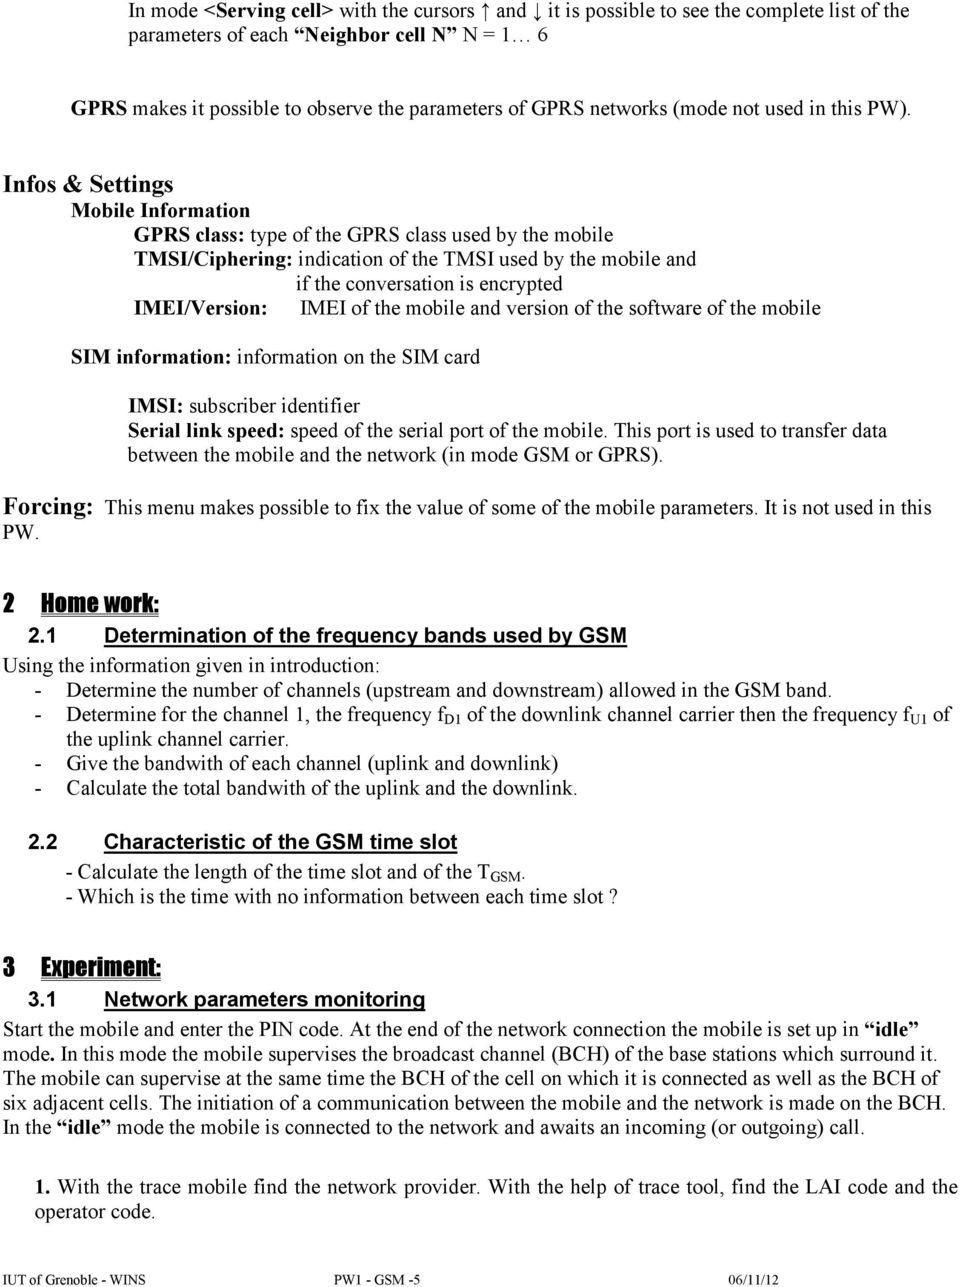 PW1 Monitoring a GSM network with a trace mobile - PDF